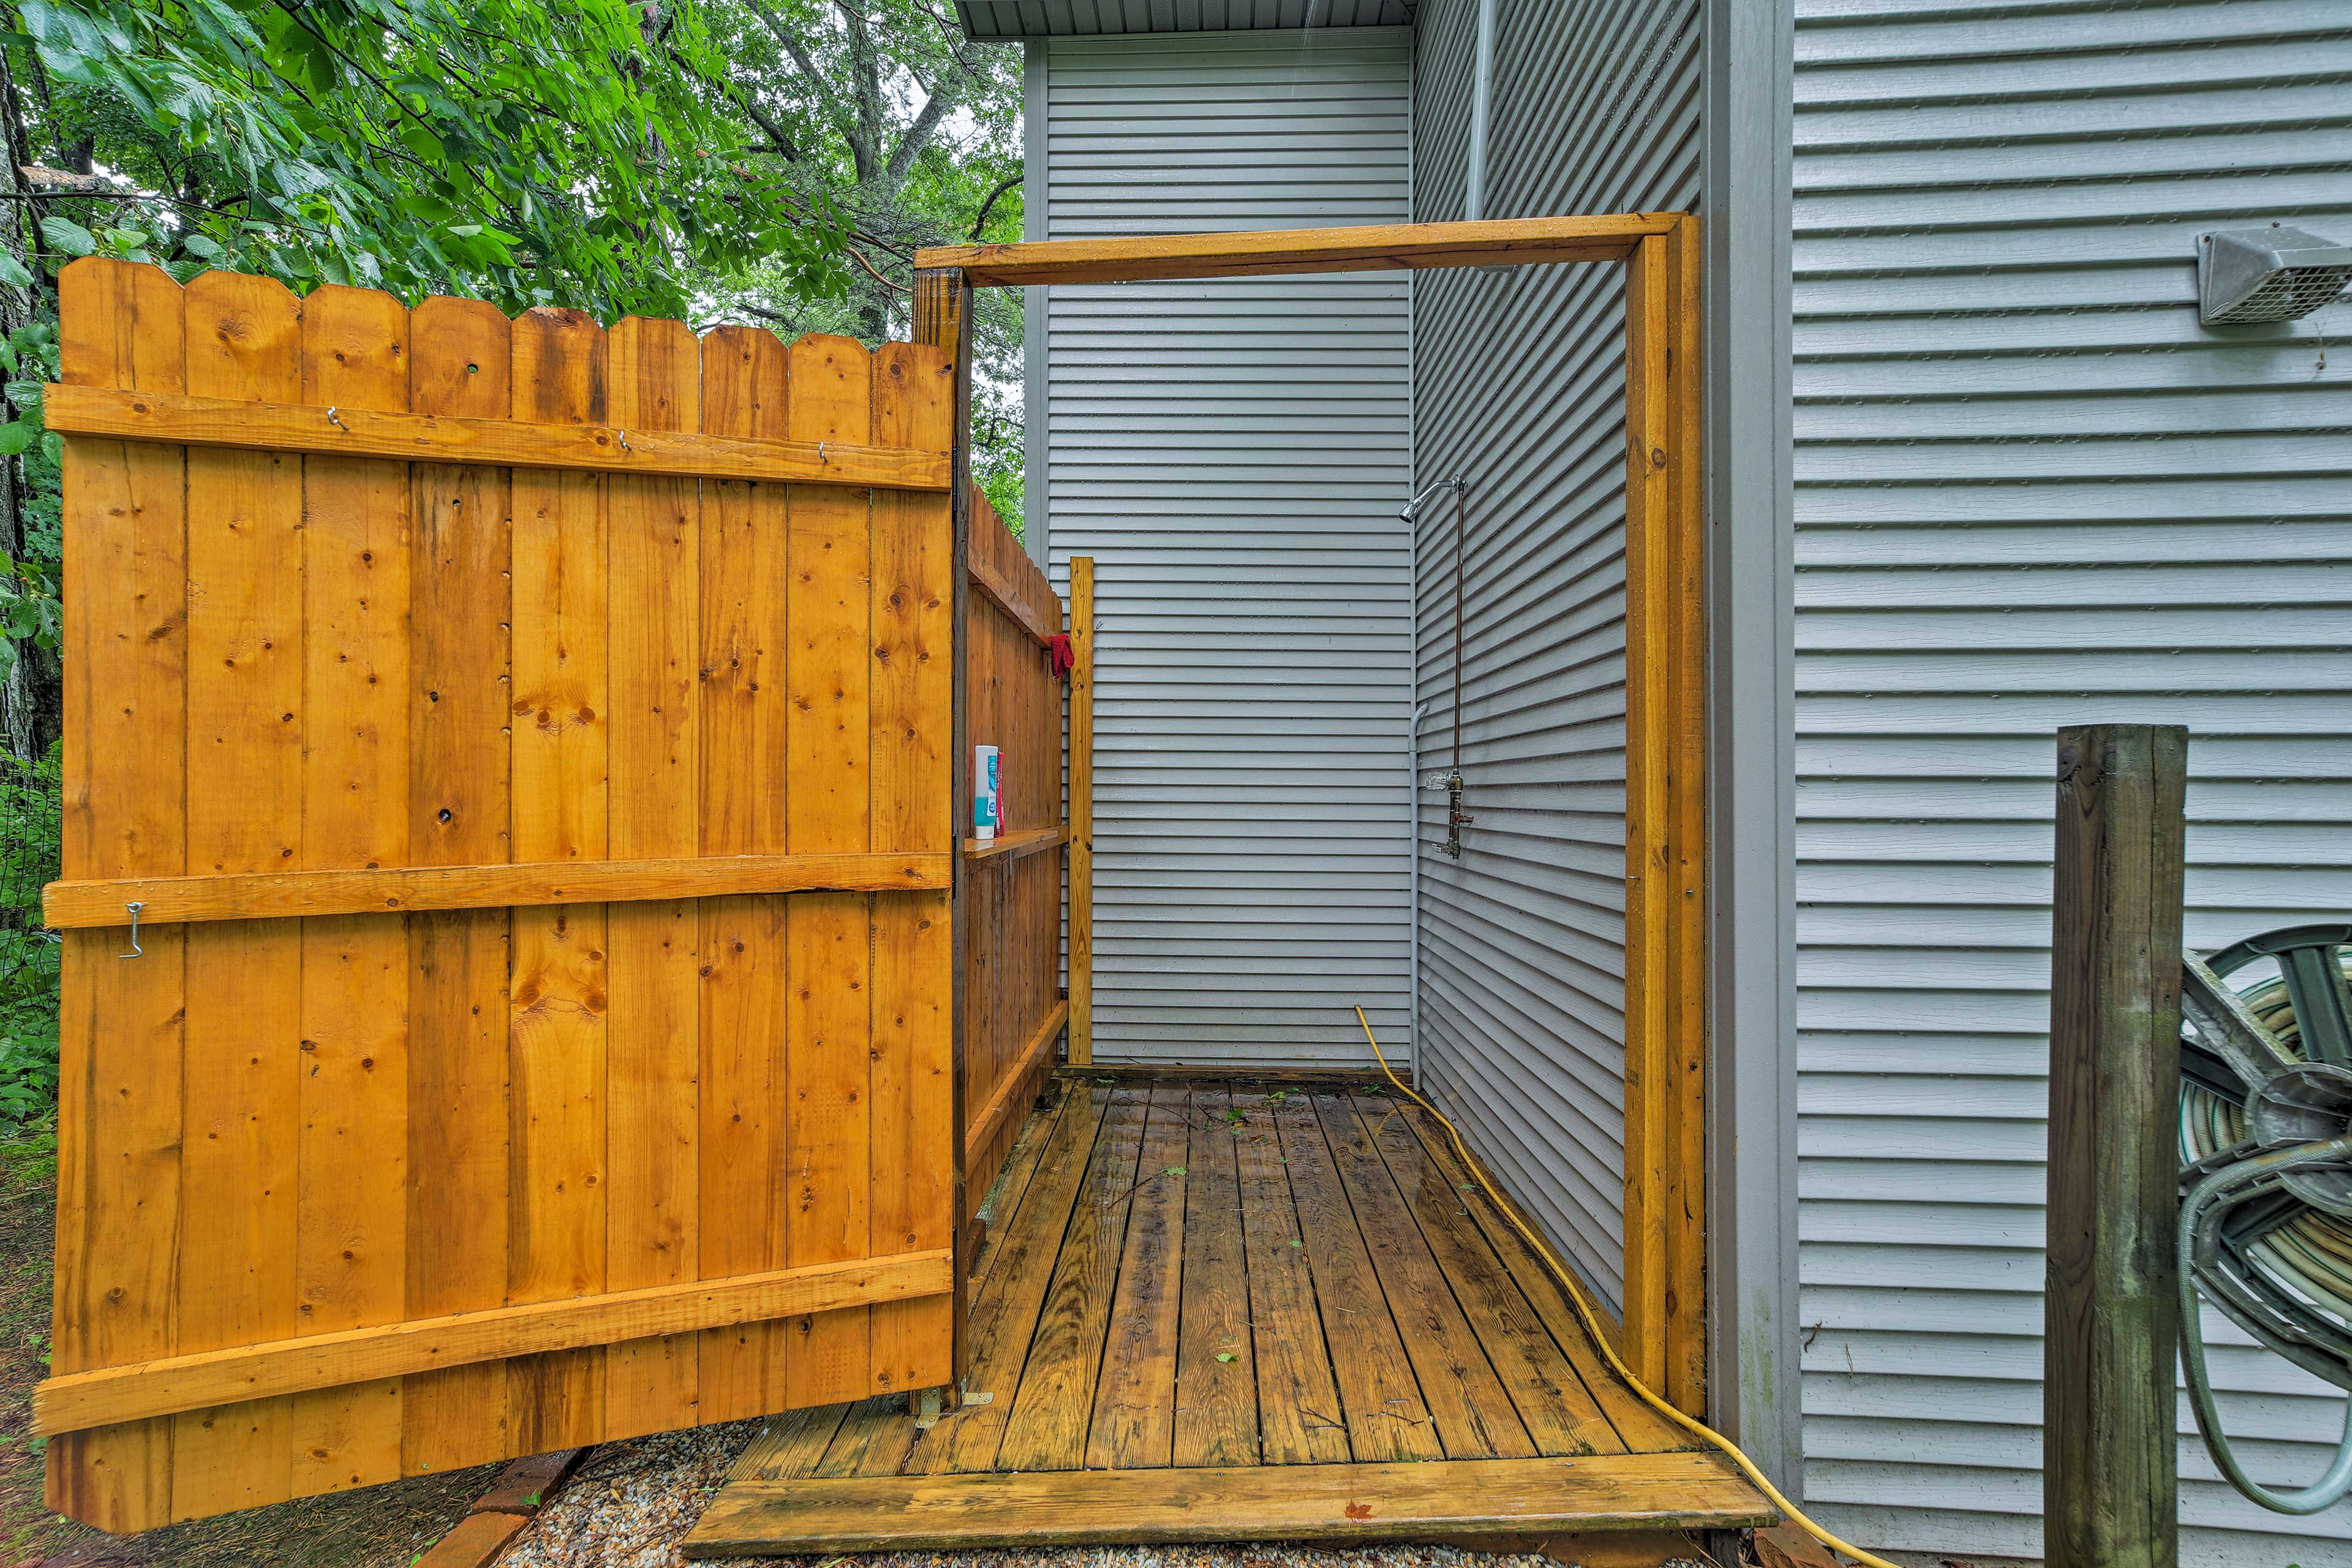 Rinse off in the brand-new outdoor shower!